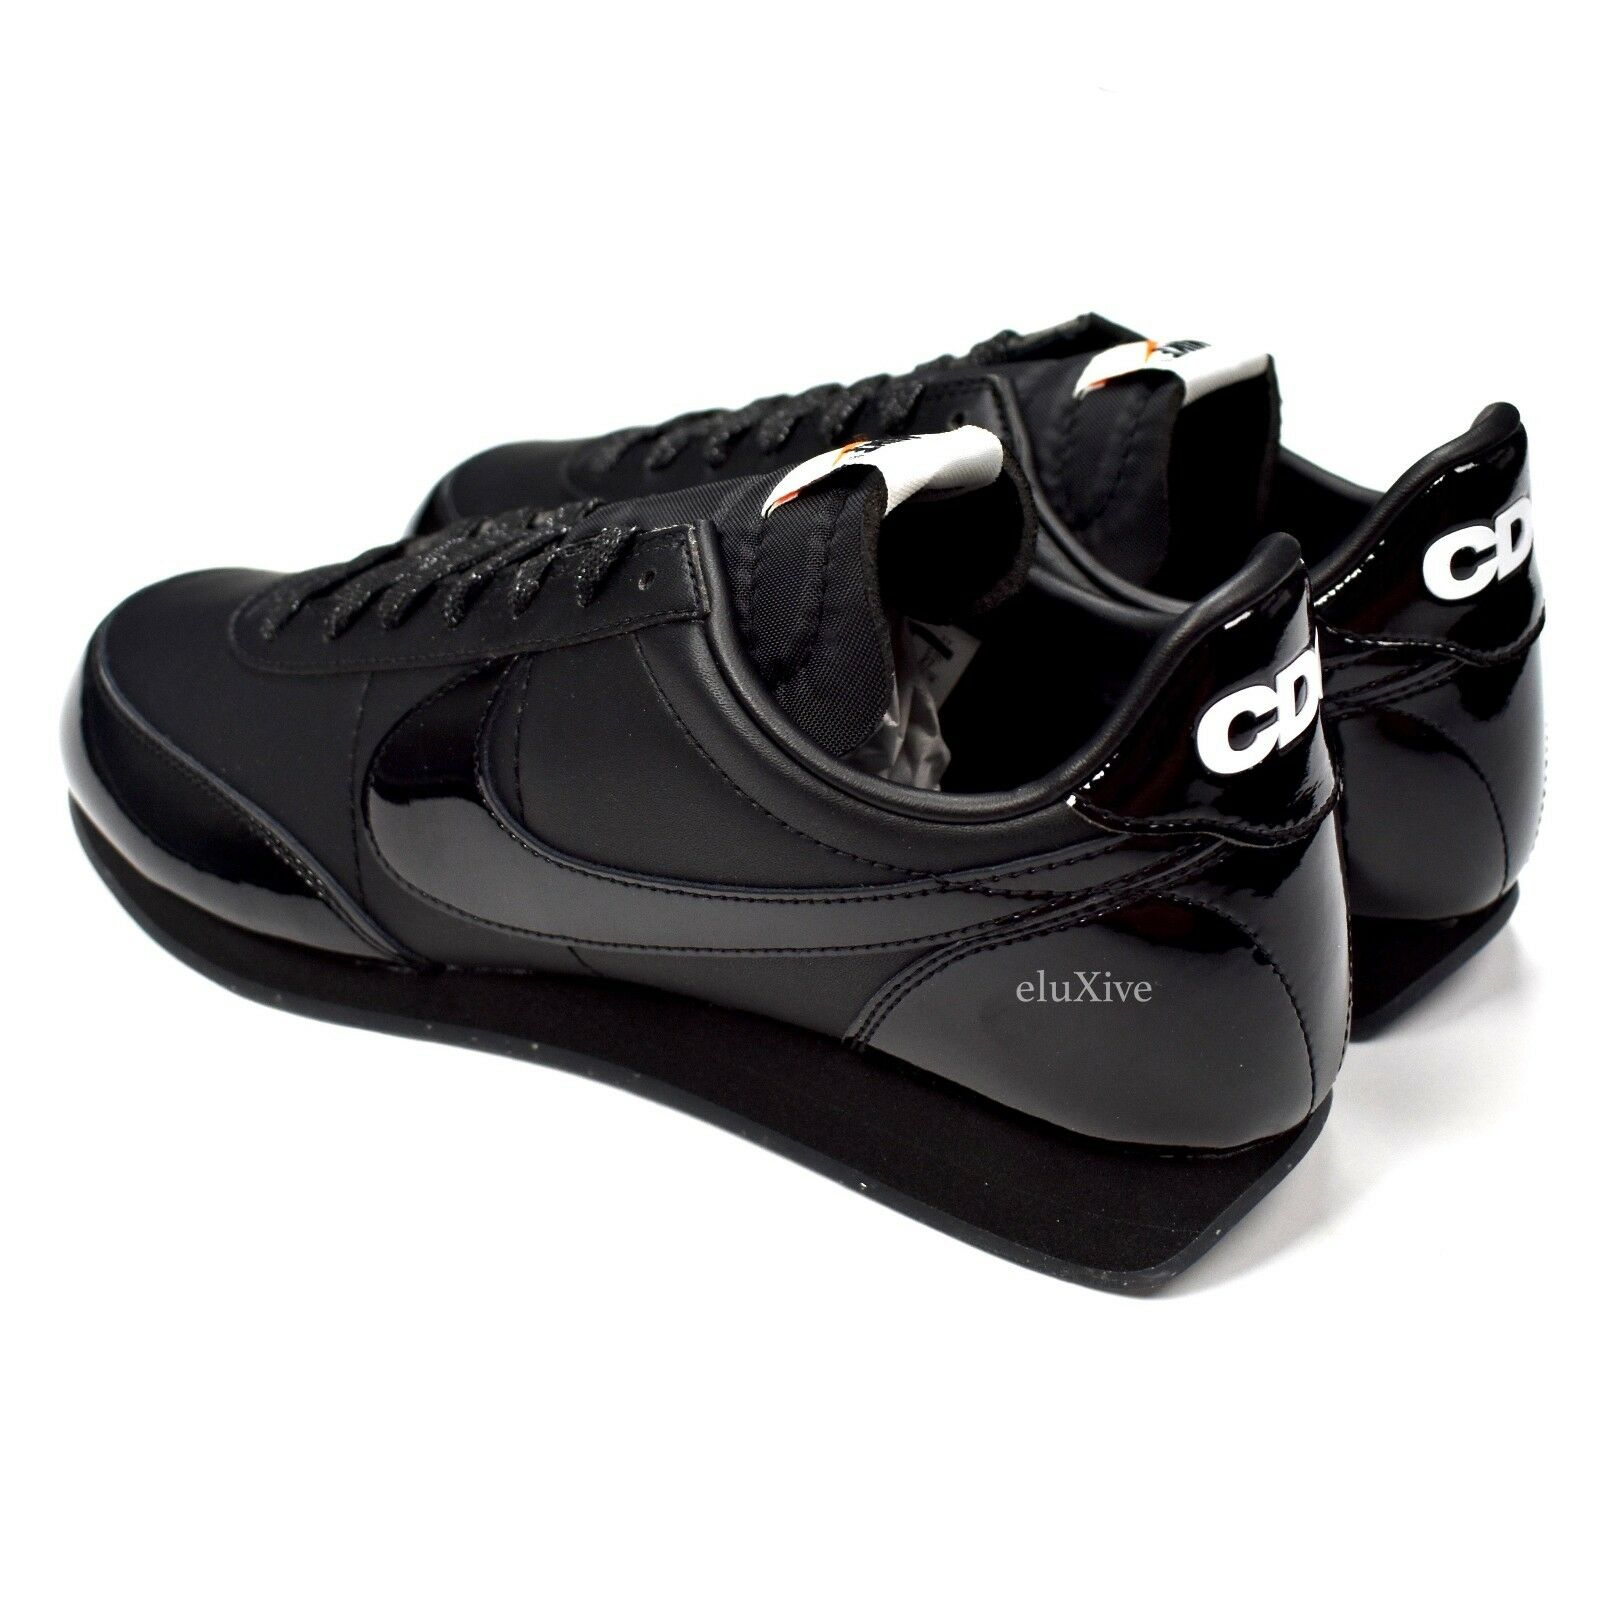 NWT Comme des Garcons Nike Nike Nike Nighttrack CDG Pelle Uomo  2018 AUTHENTIC ae1f85